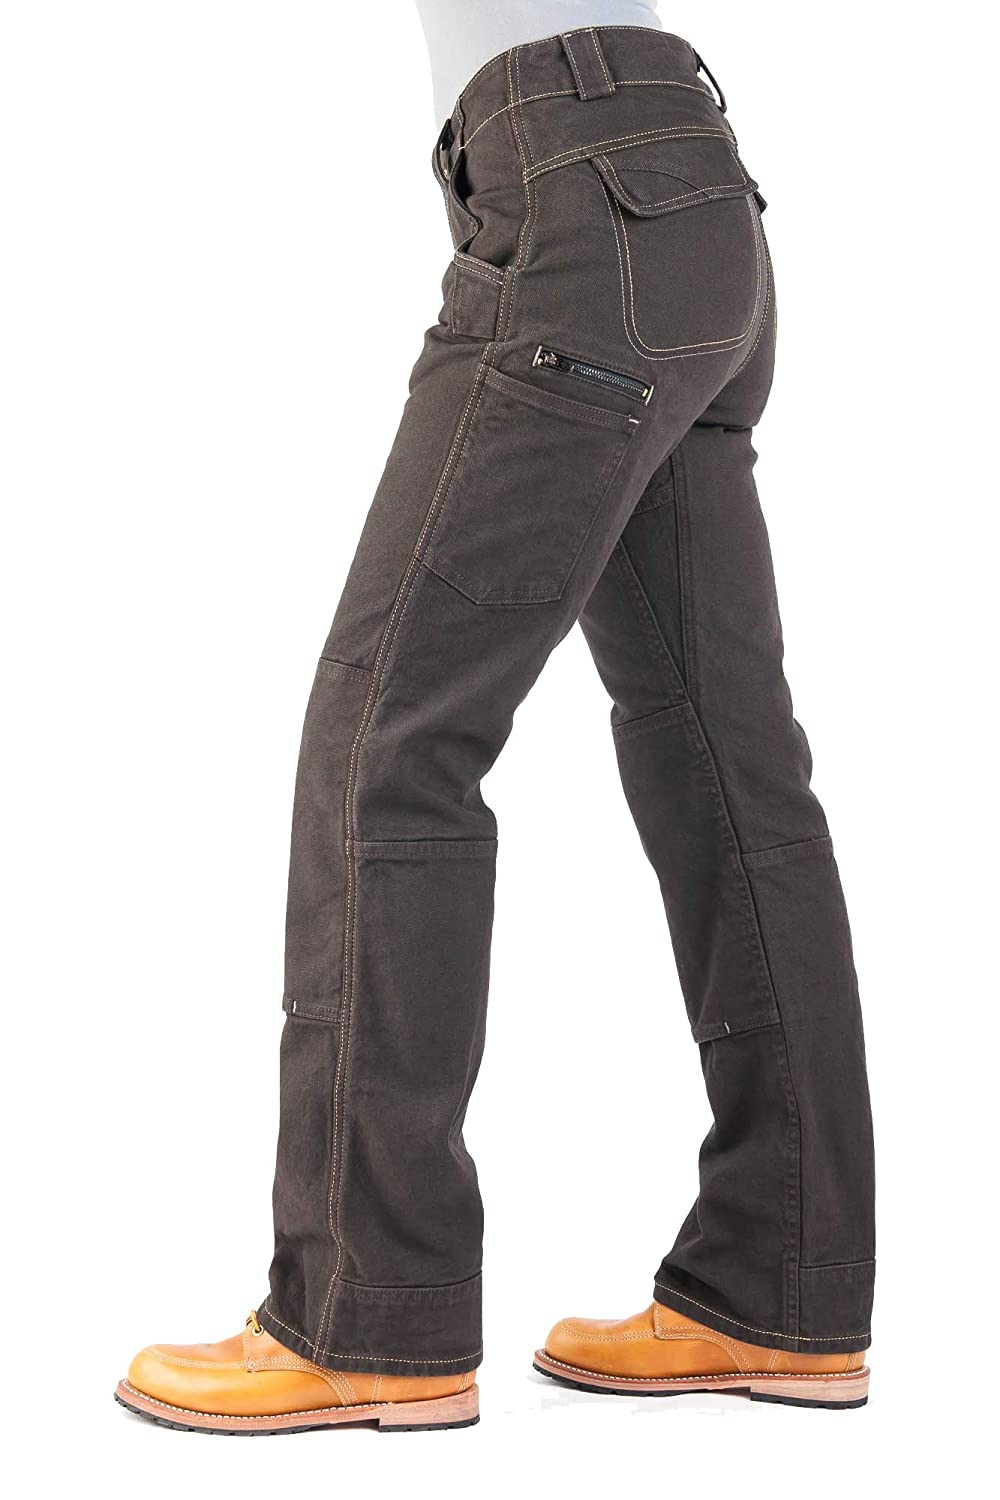 Durable Stretch Canvas Cargo Pant Dovetail Workwear Utility Pants for Women Day Construct Relaxed Fit